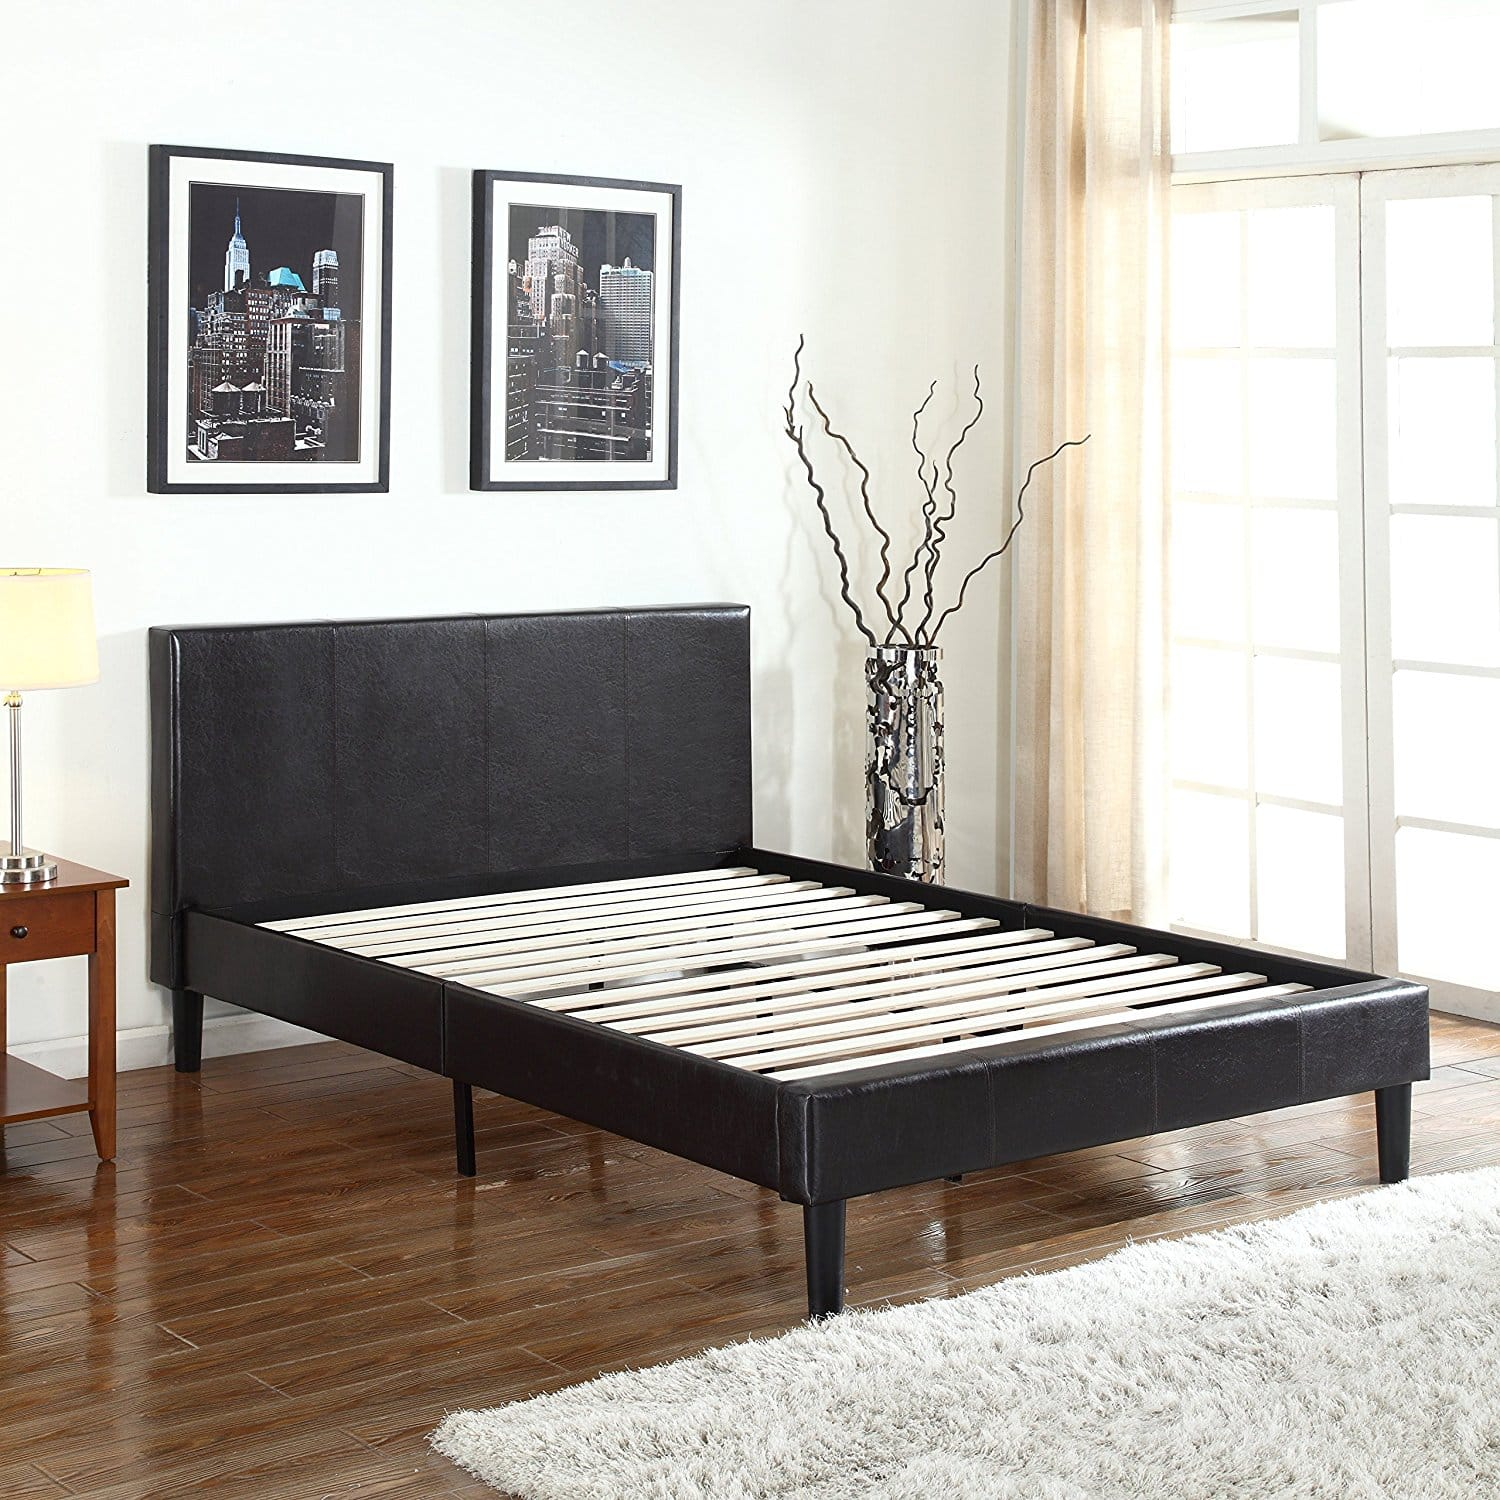 Stunning Divano Roma Furniture Deluxe Bonded Leather Platform Bed with Wooden Slats Queen Free Shipping Tax Slickdeals net